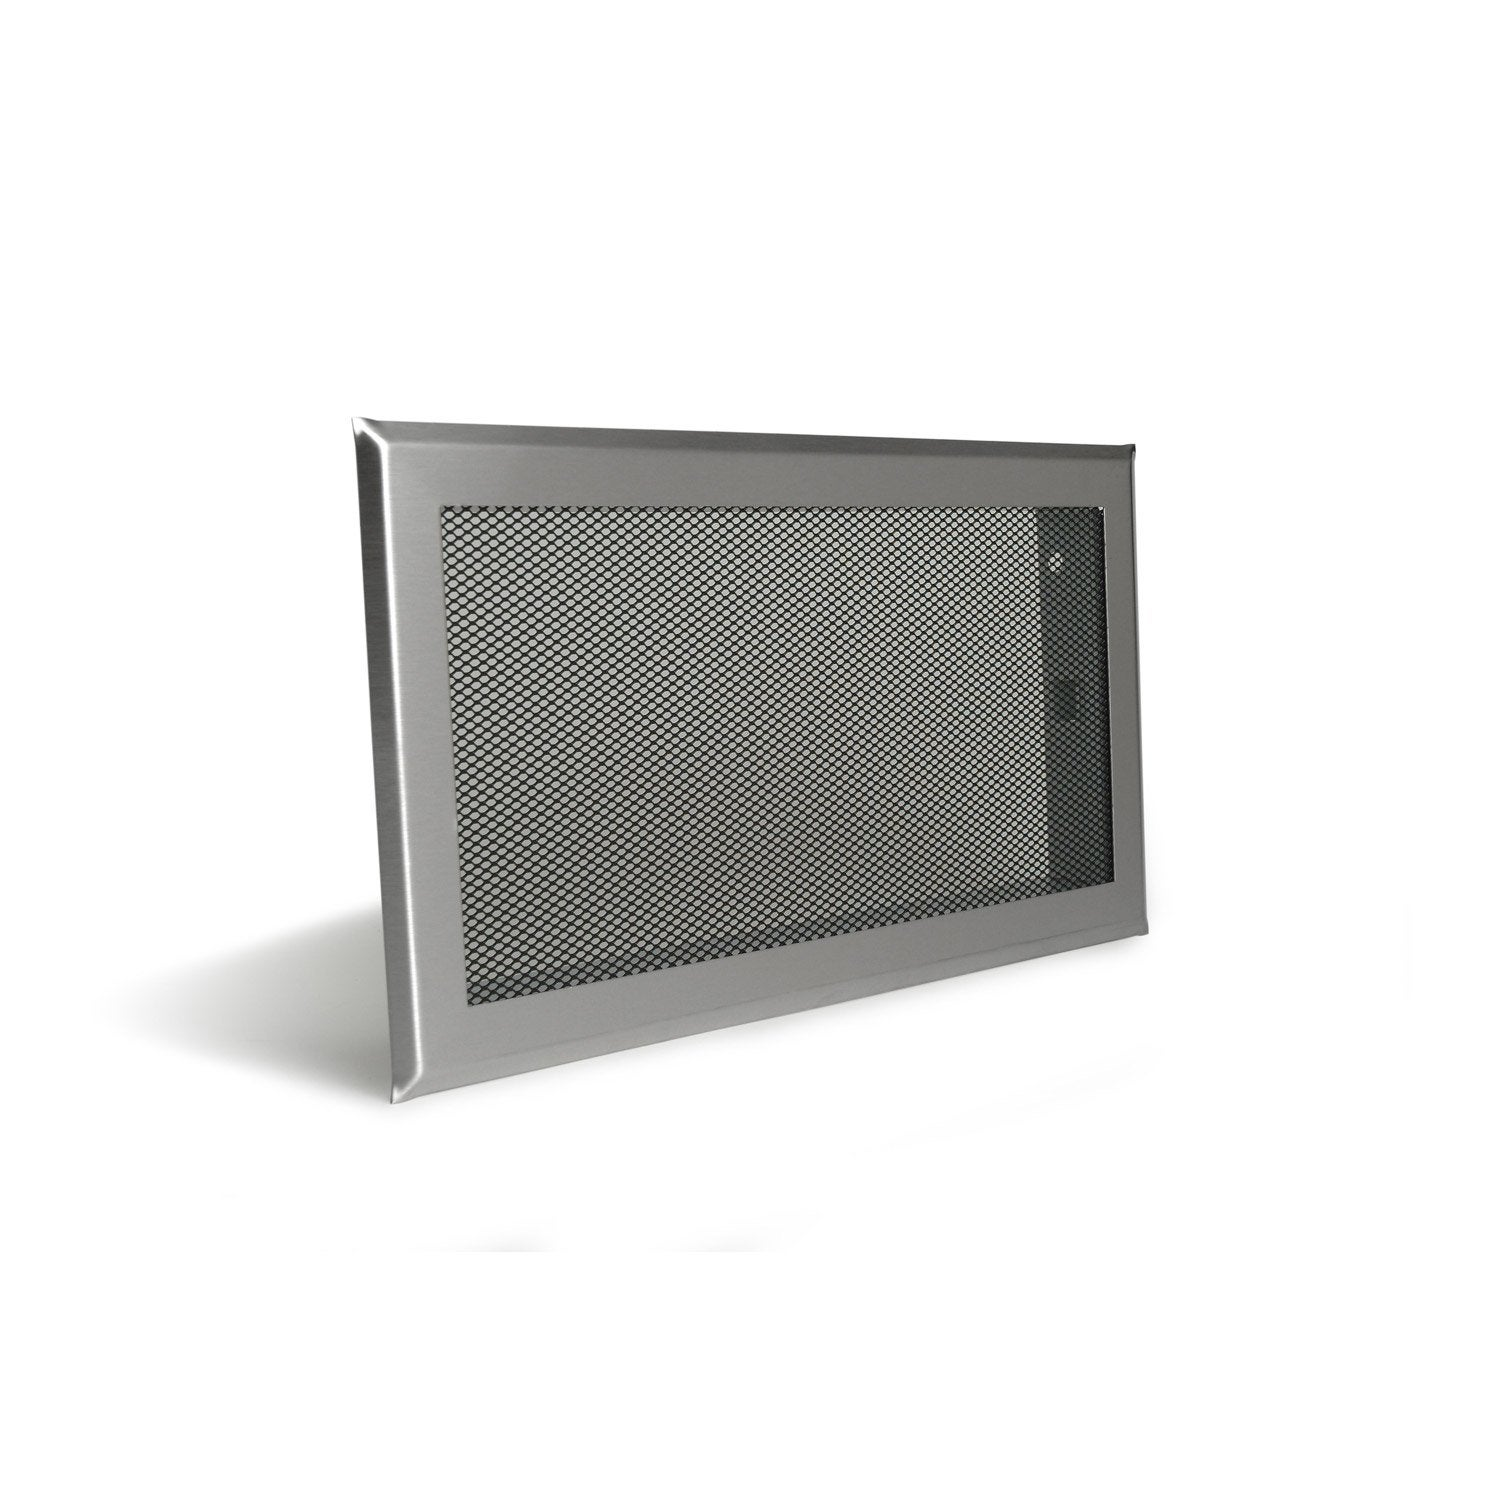 Grille de ventilation inox et acier equation leroy merlin - Leroy merlin vide cave ...